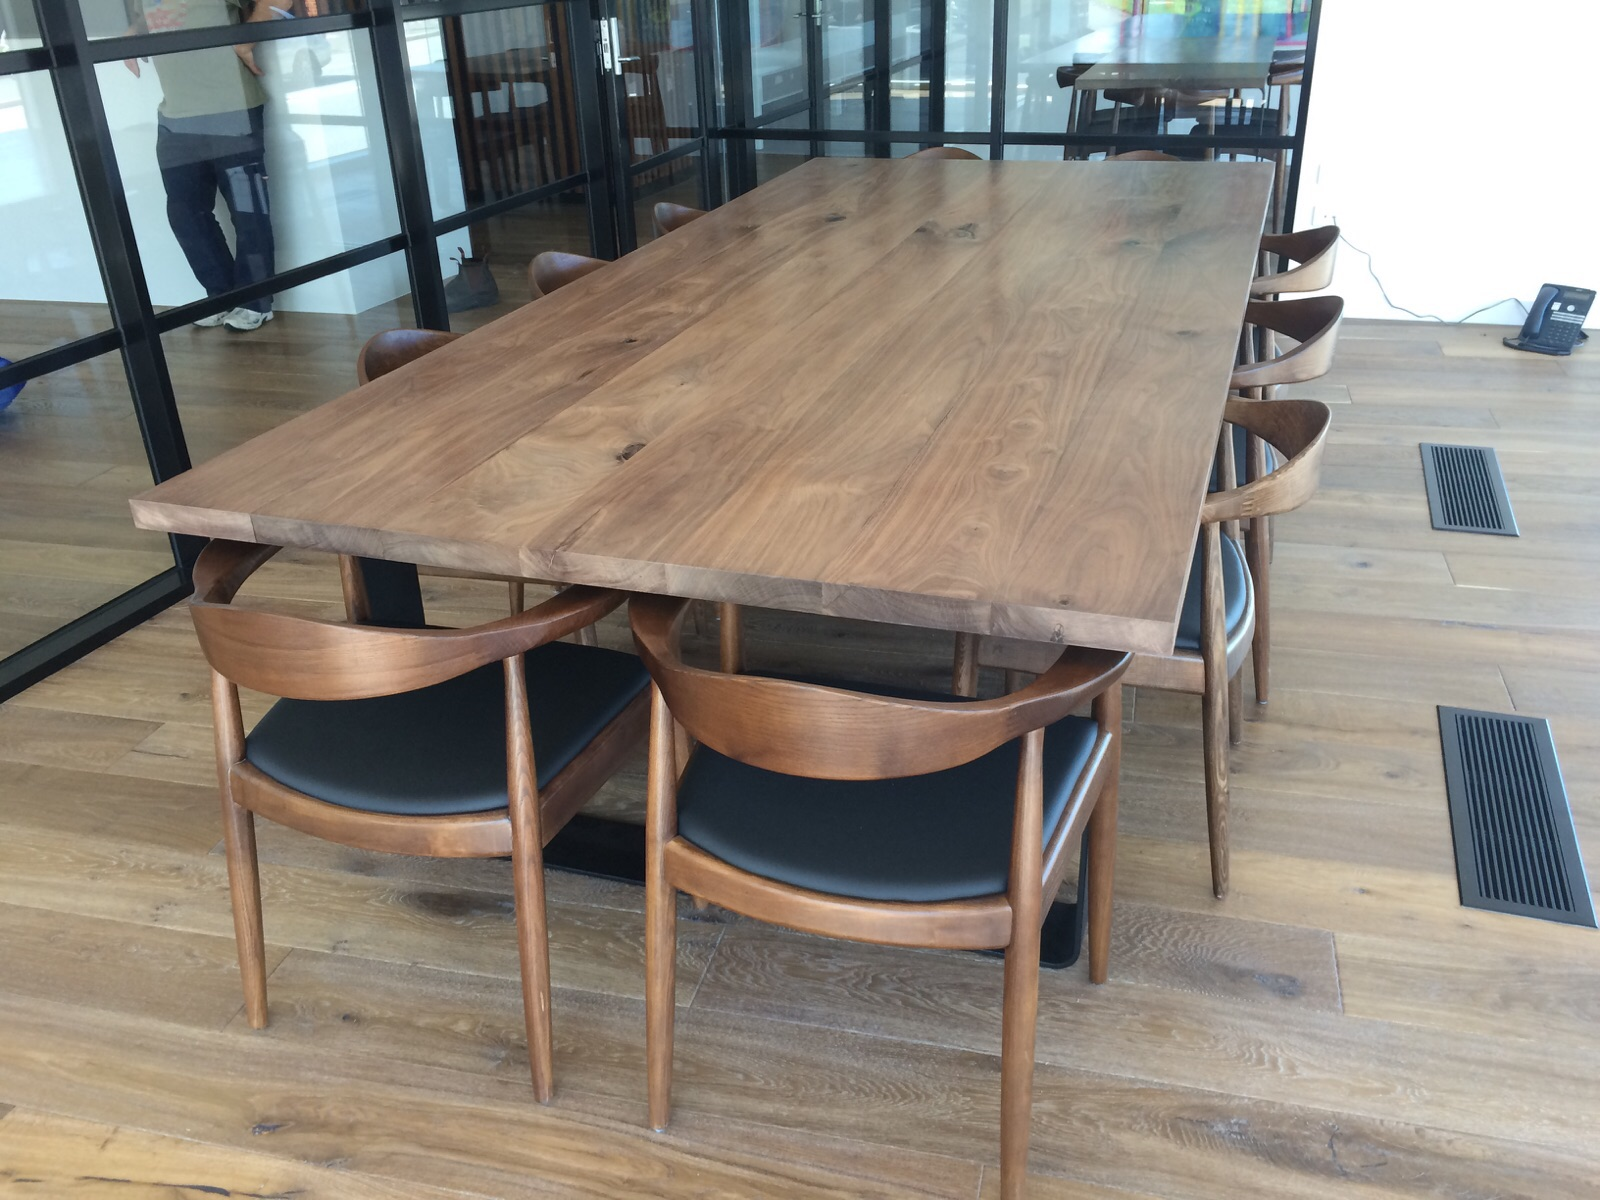 King Dining Table American Black Walnut Lumber Furniture